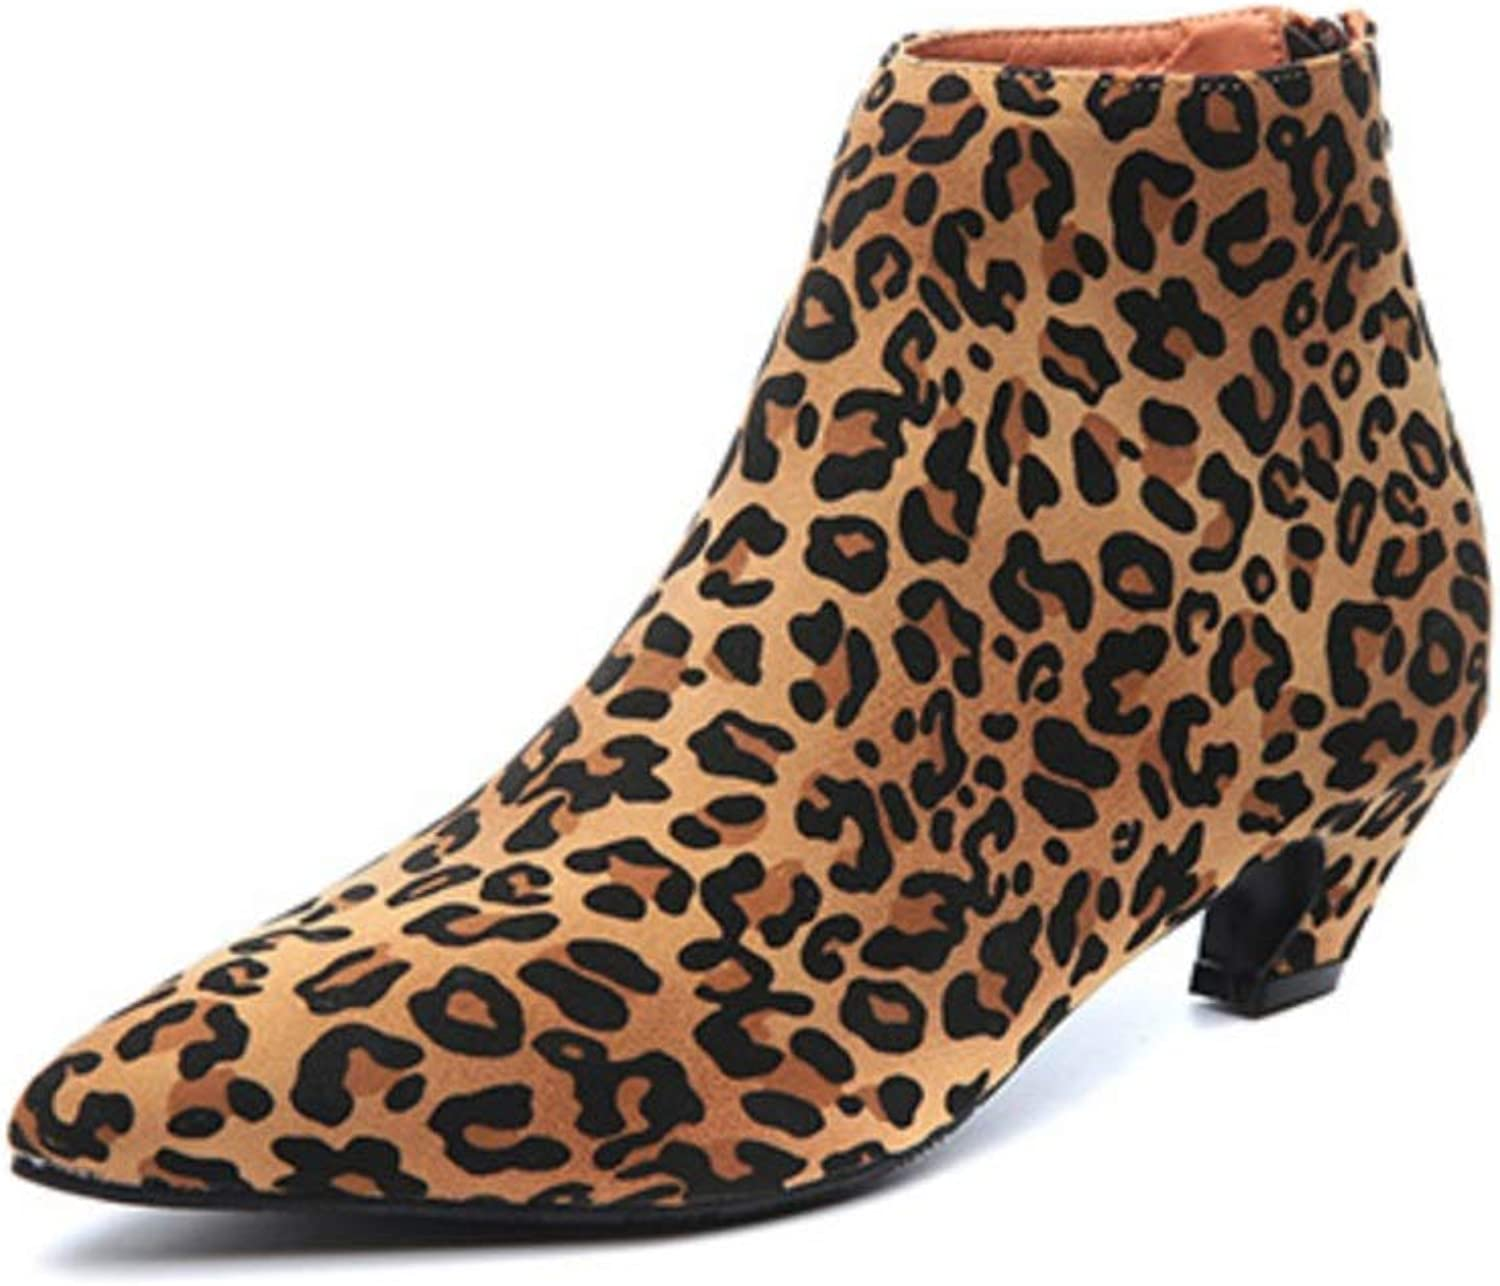 Women Boots shoes Sexy Pointed Toe Leopard Women Boots Strange Kitten Heel Ankle Boots Women Suede Leather Booties Woman